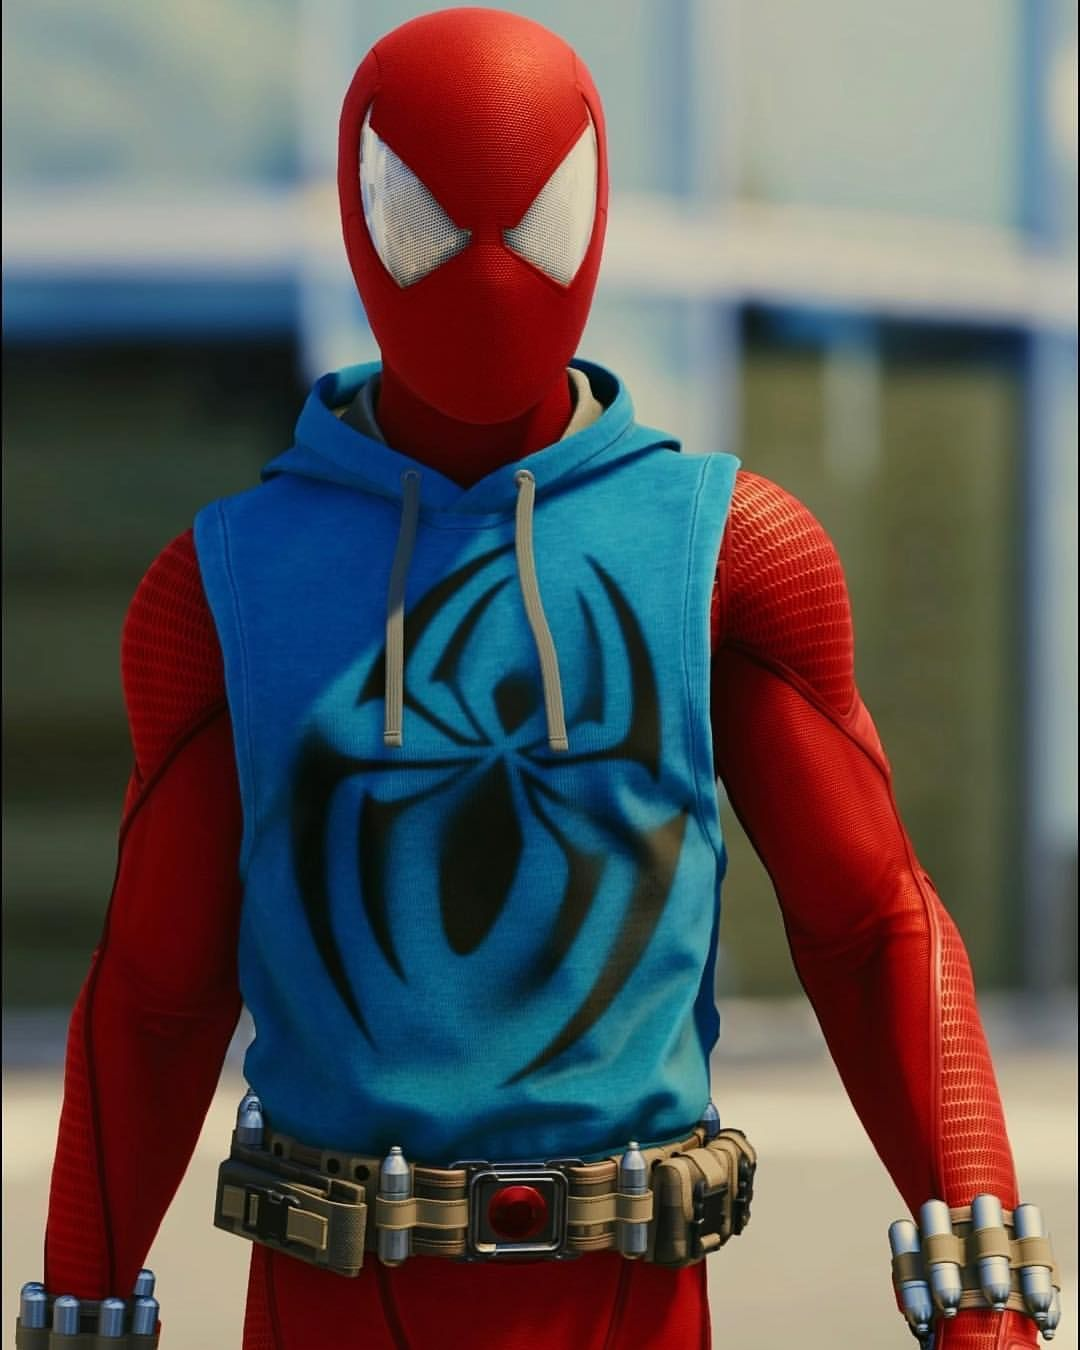 Spidey Suit Series Scarlet Spider Suit Full Size Shots On My